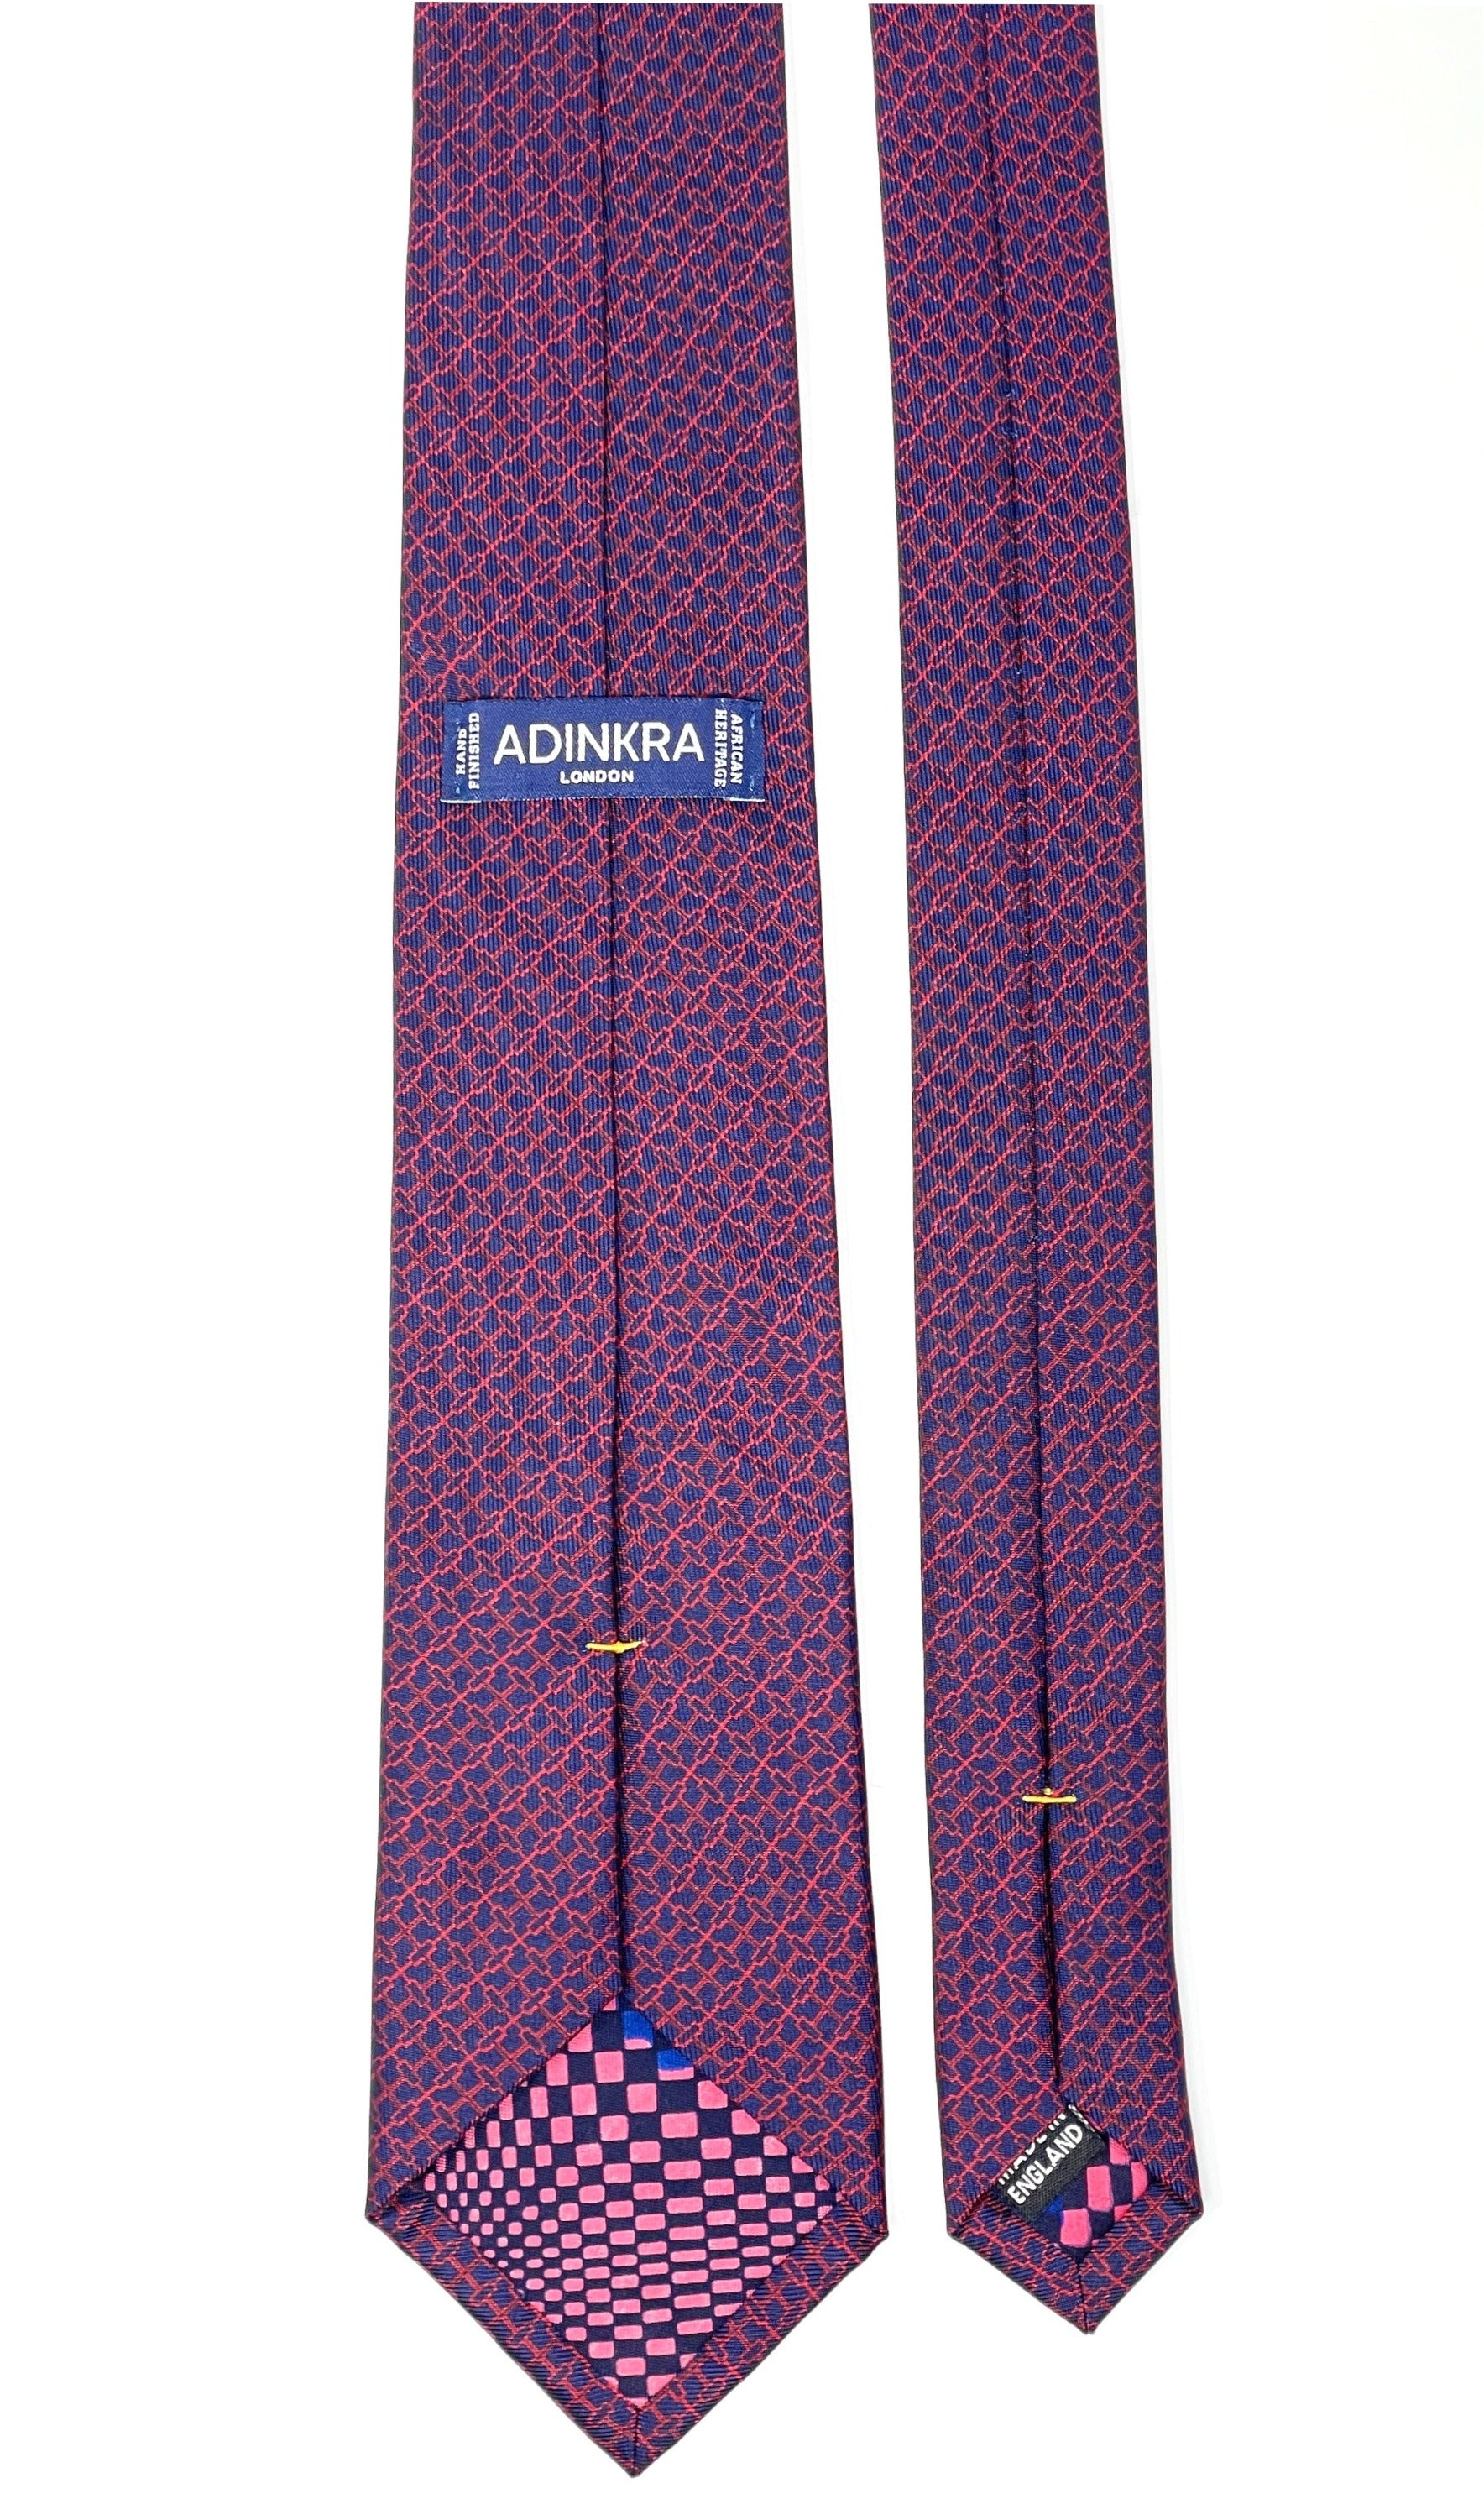 NSAA hand-finished silk tie